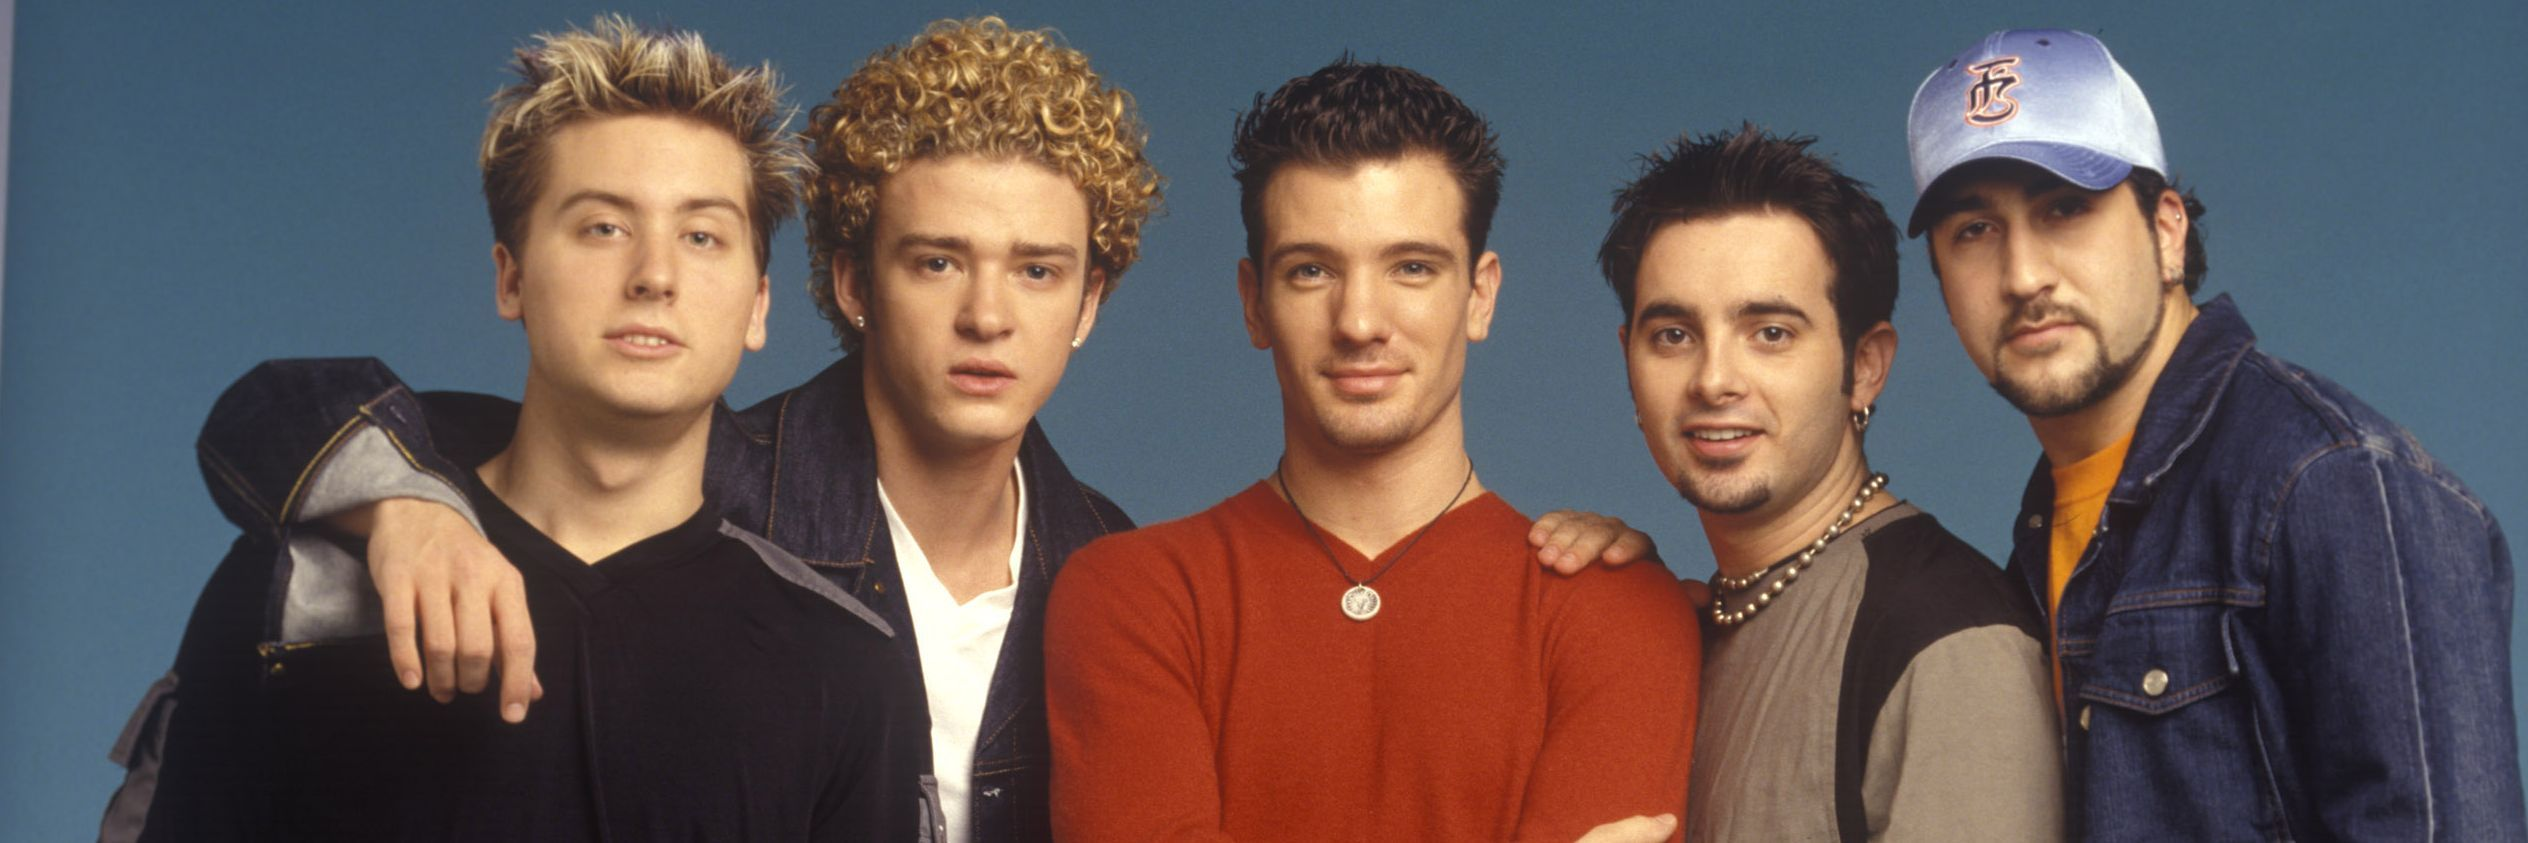 NSYNC Will Reunite This Year, According To Lance Bass - MTV